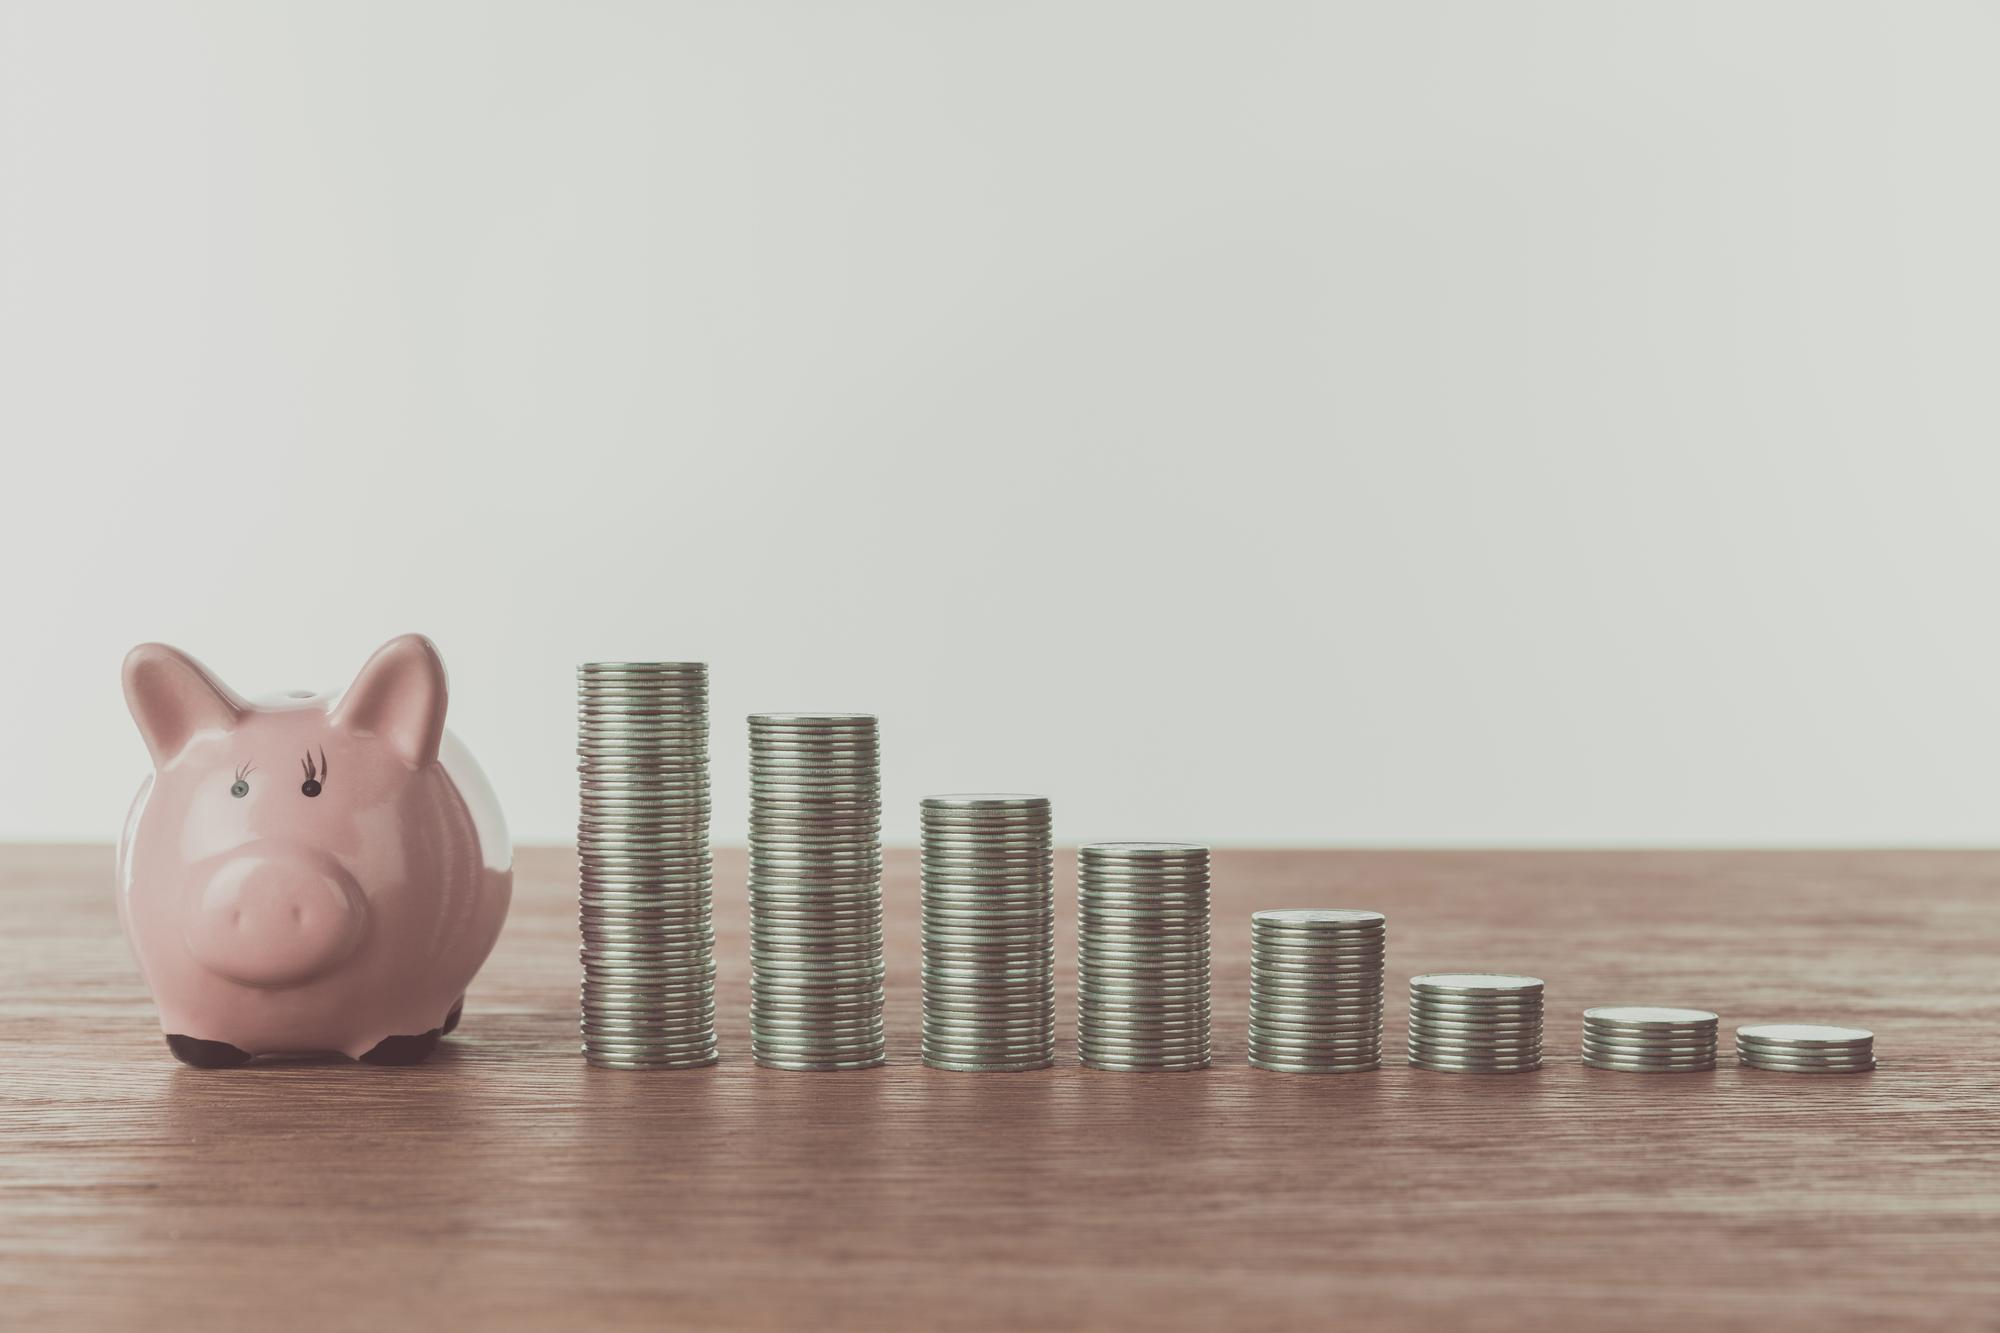 A photo of Piggy bank and coins